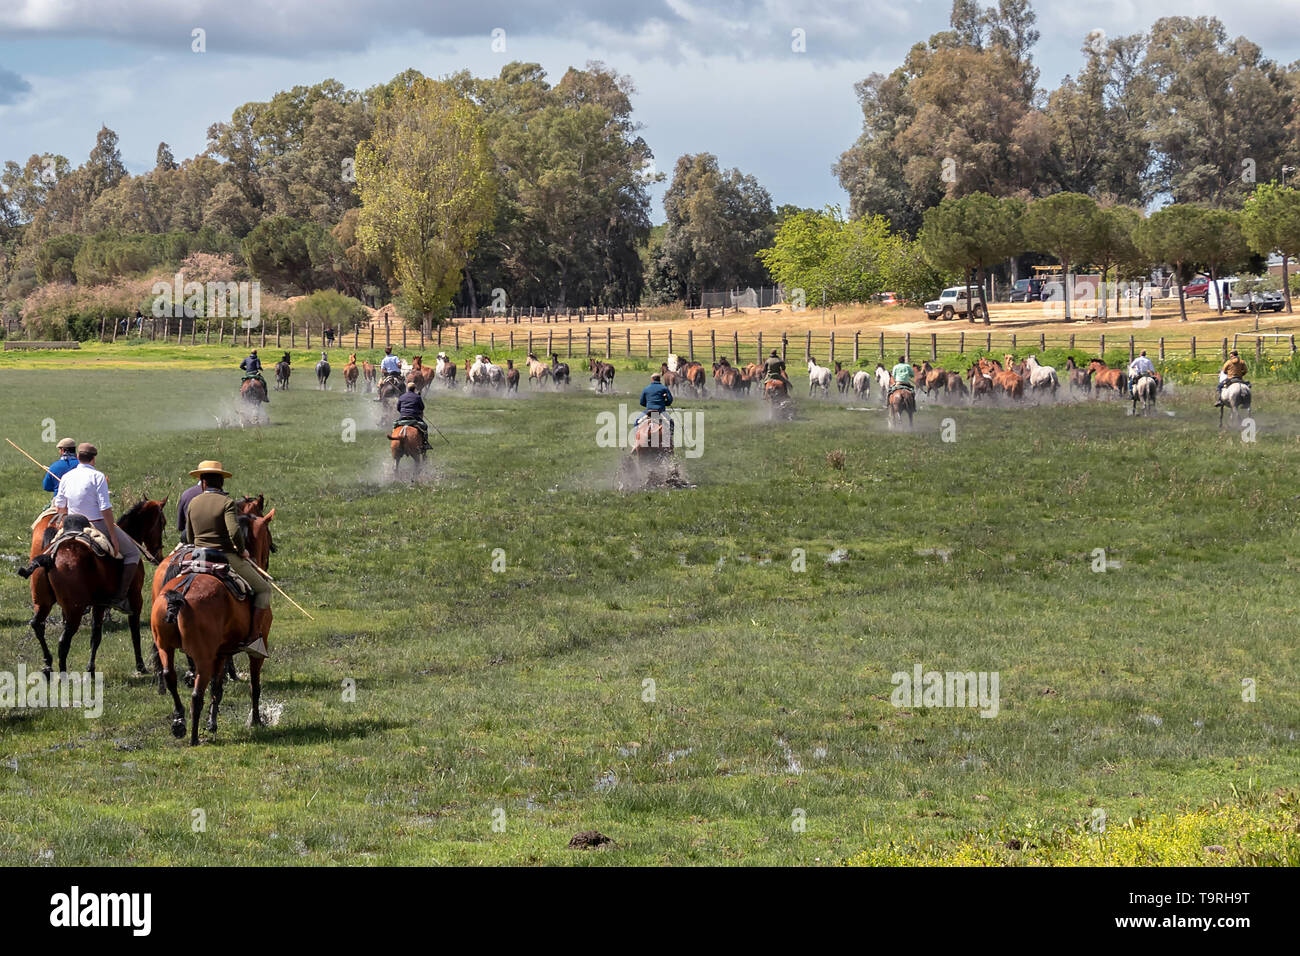 Keepers of breeding mares in El Rocio wetlands,  guiding horses and mares to be baptized - Stock Image